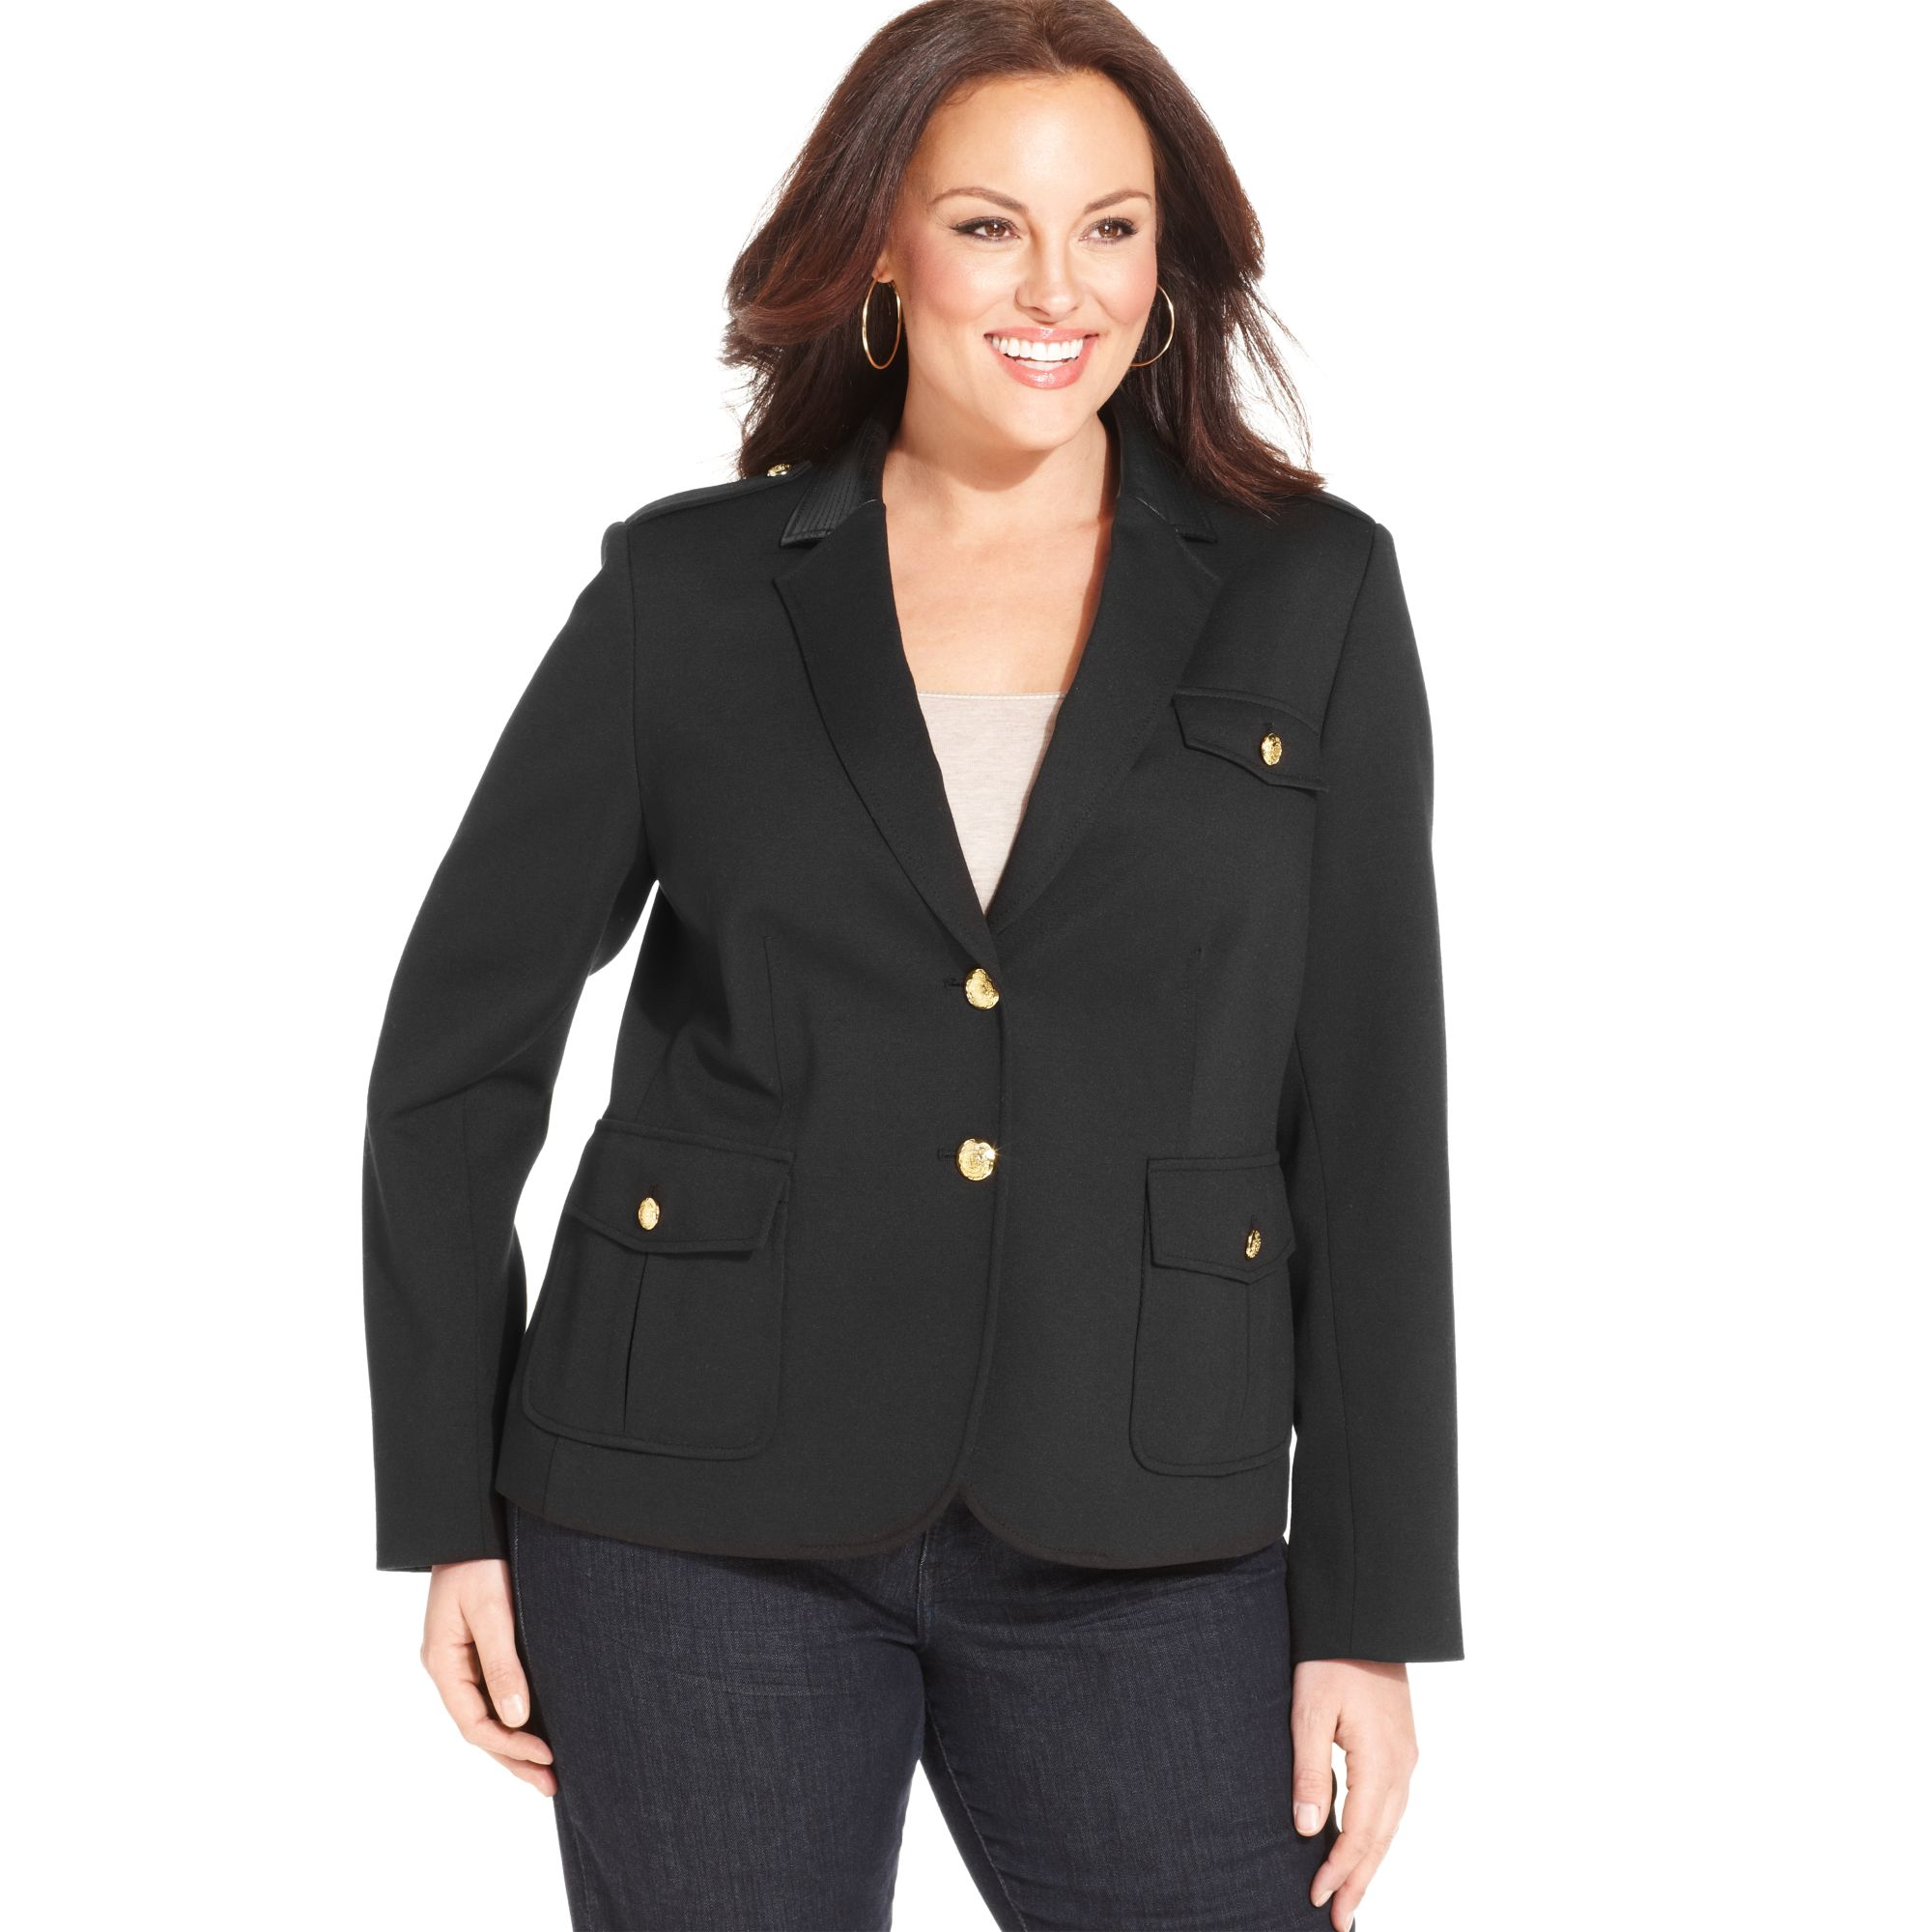 Plus size clothing stores in nyc